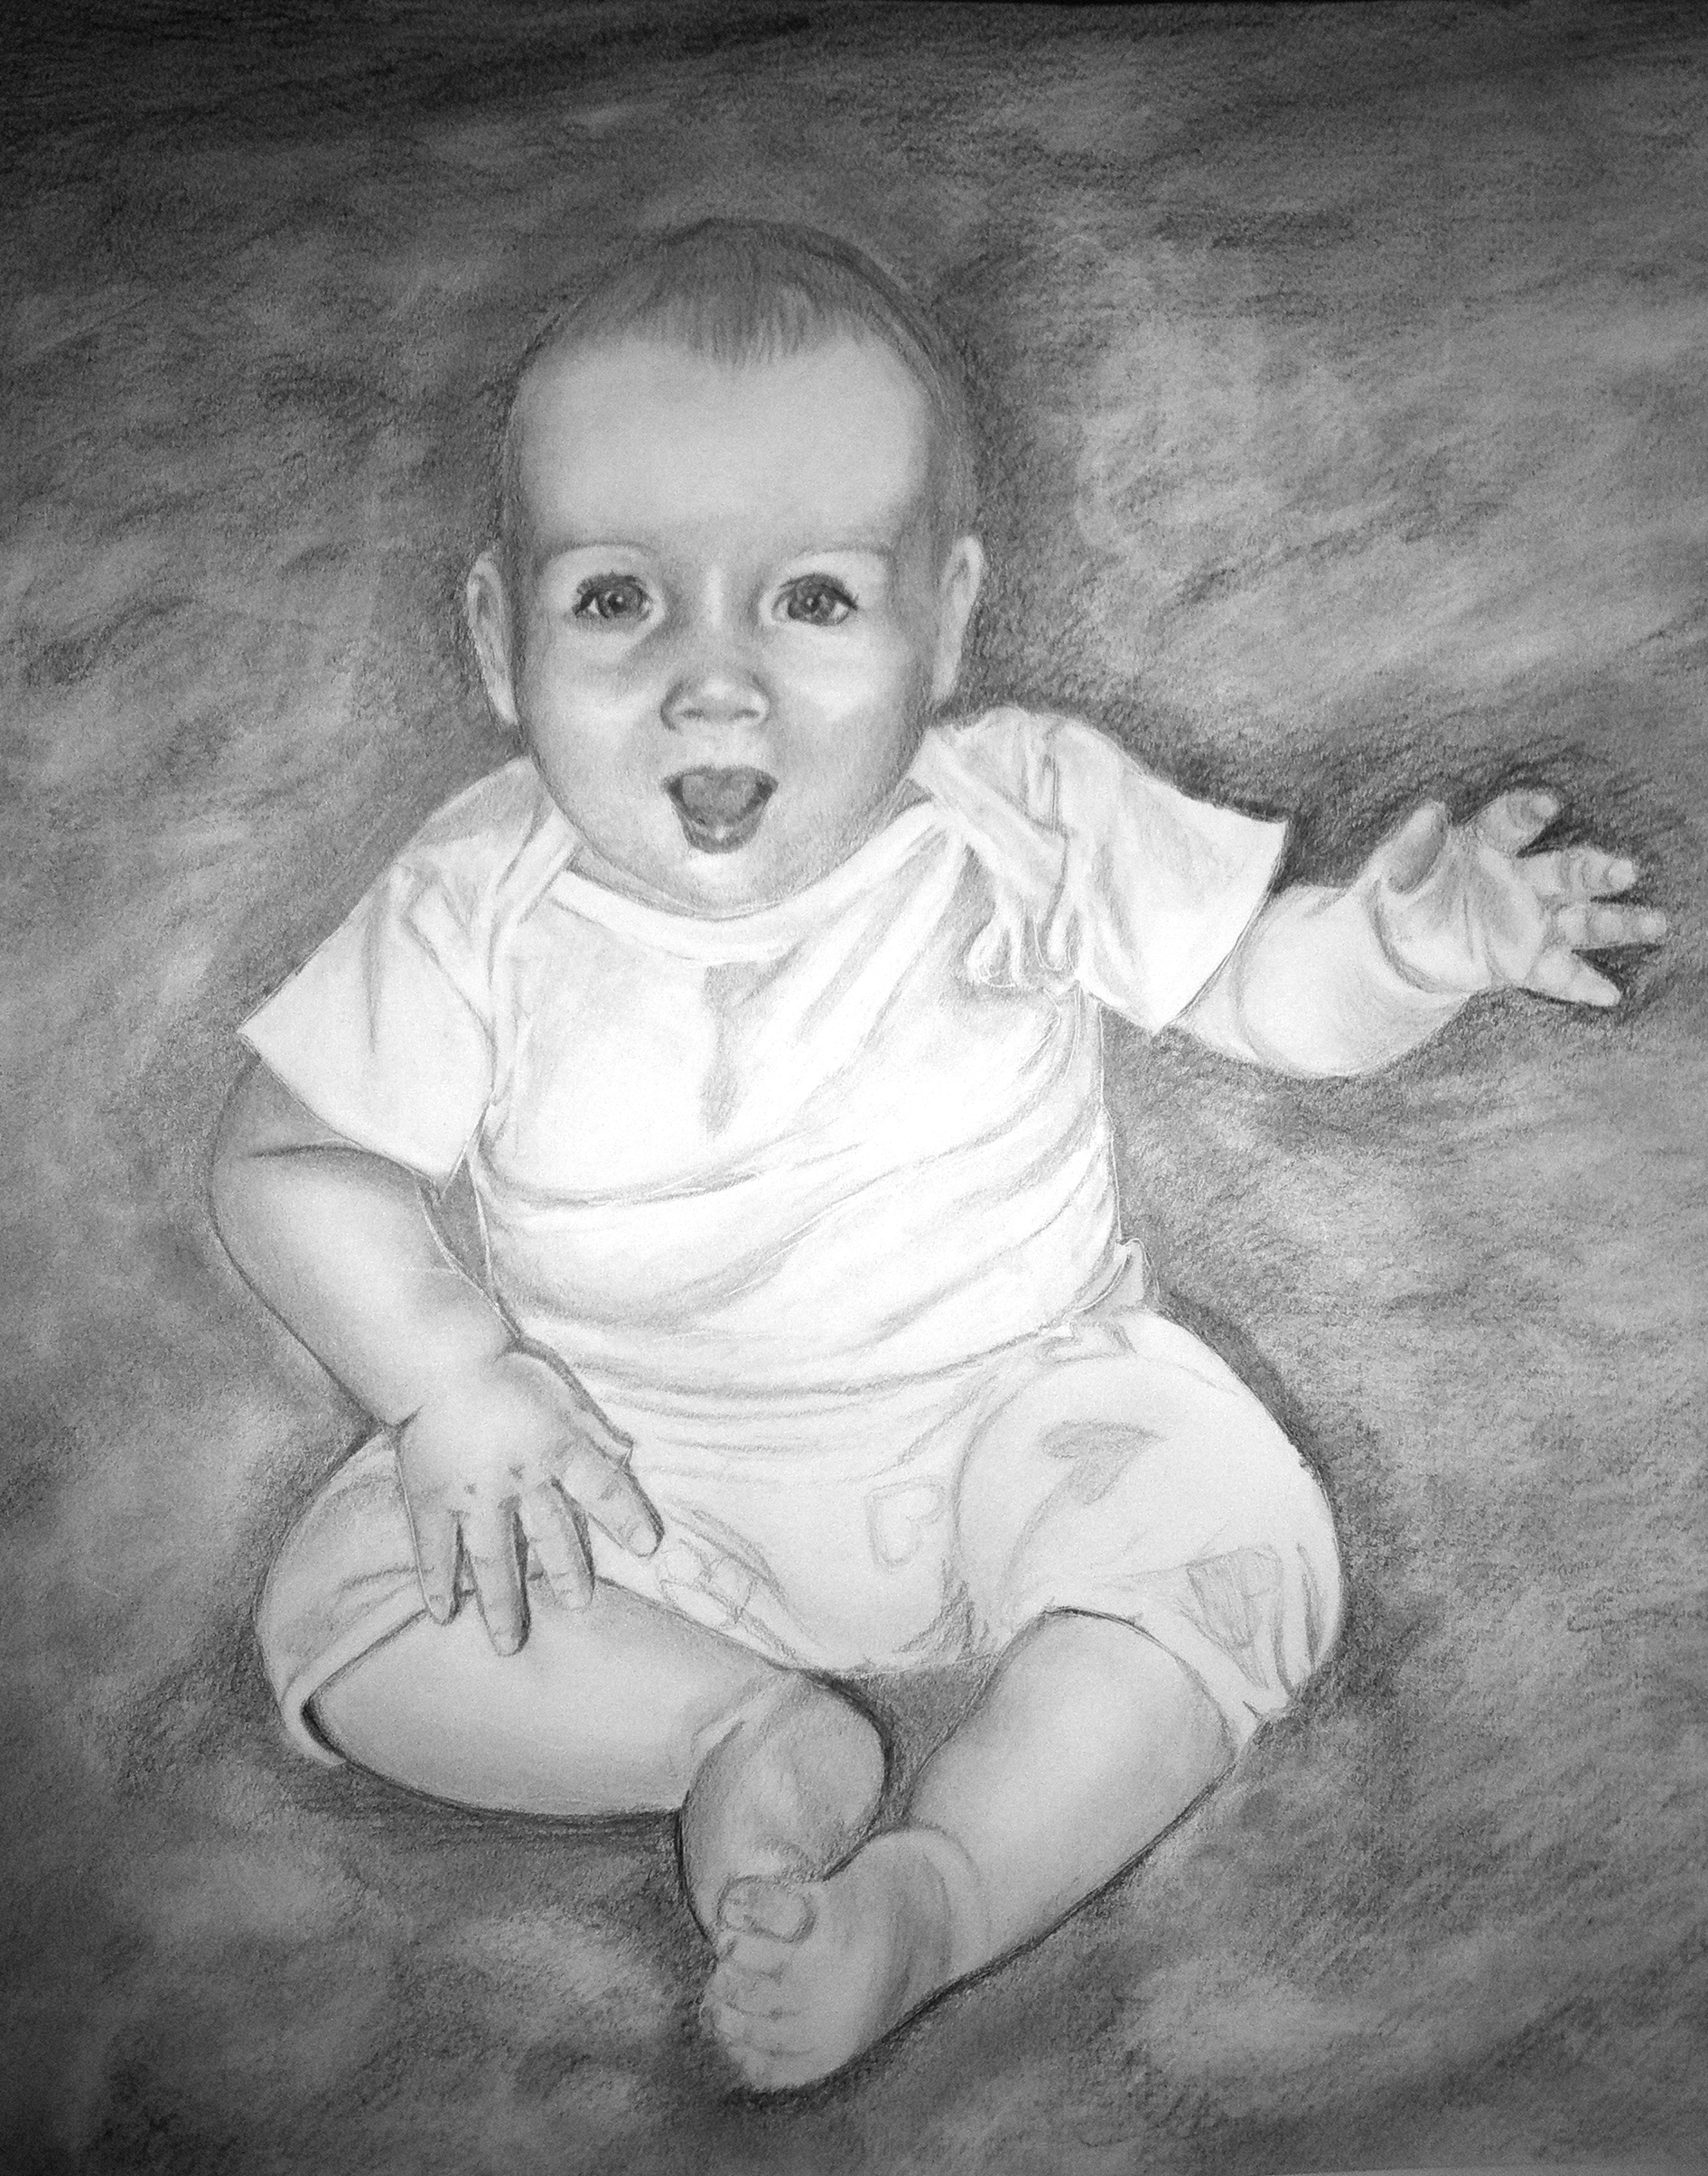 Drawn baby #13